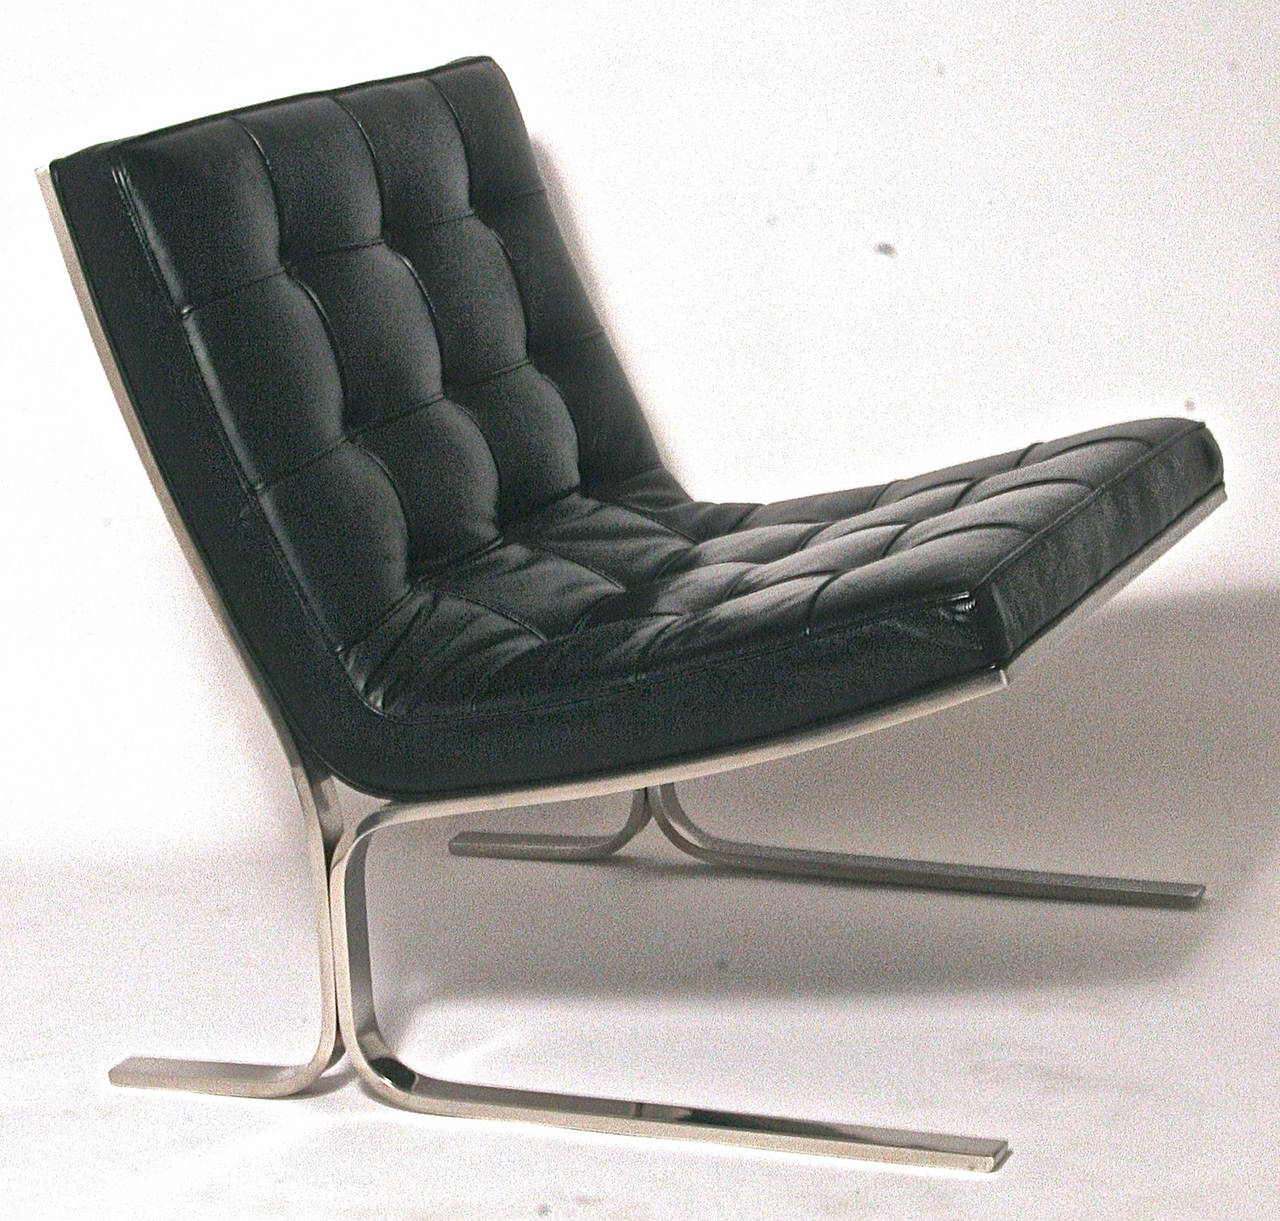 Pair of Nicos Zographos Black Leather Lounge Chairs at 1stdibs